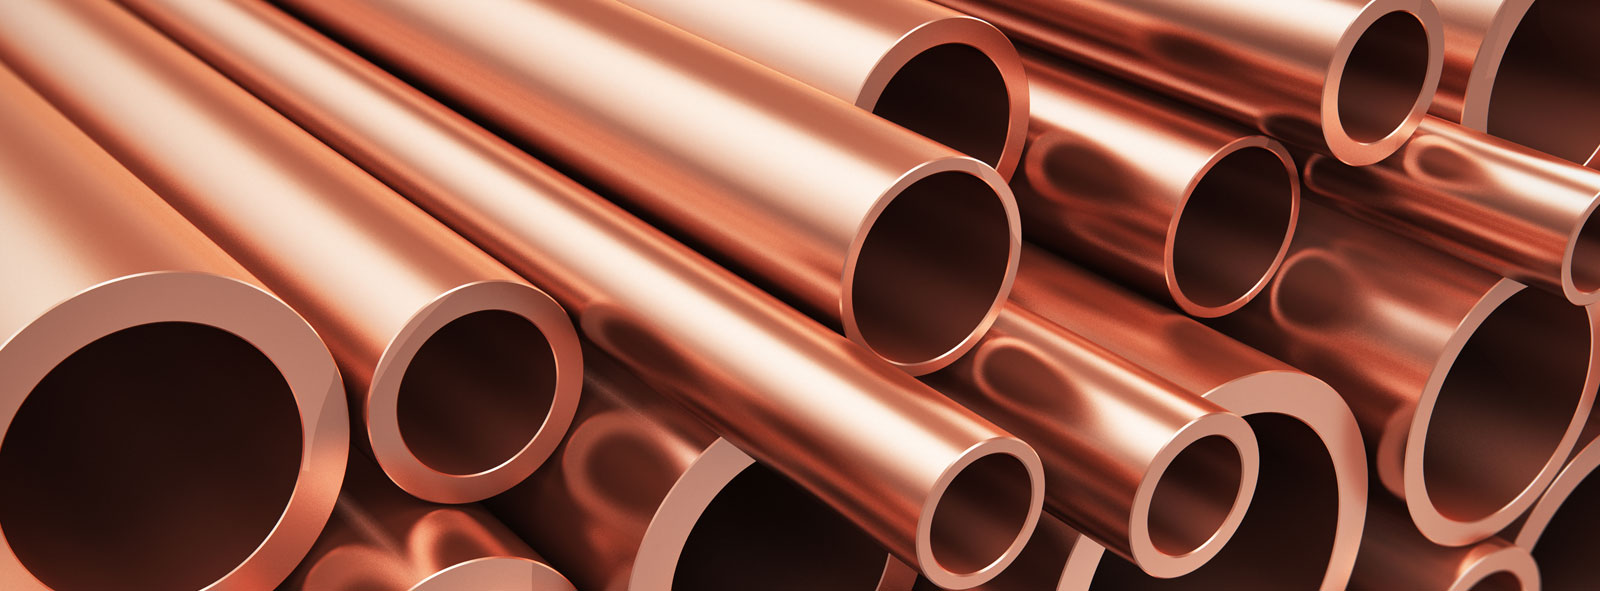 copper-tube-manufacturers-india